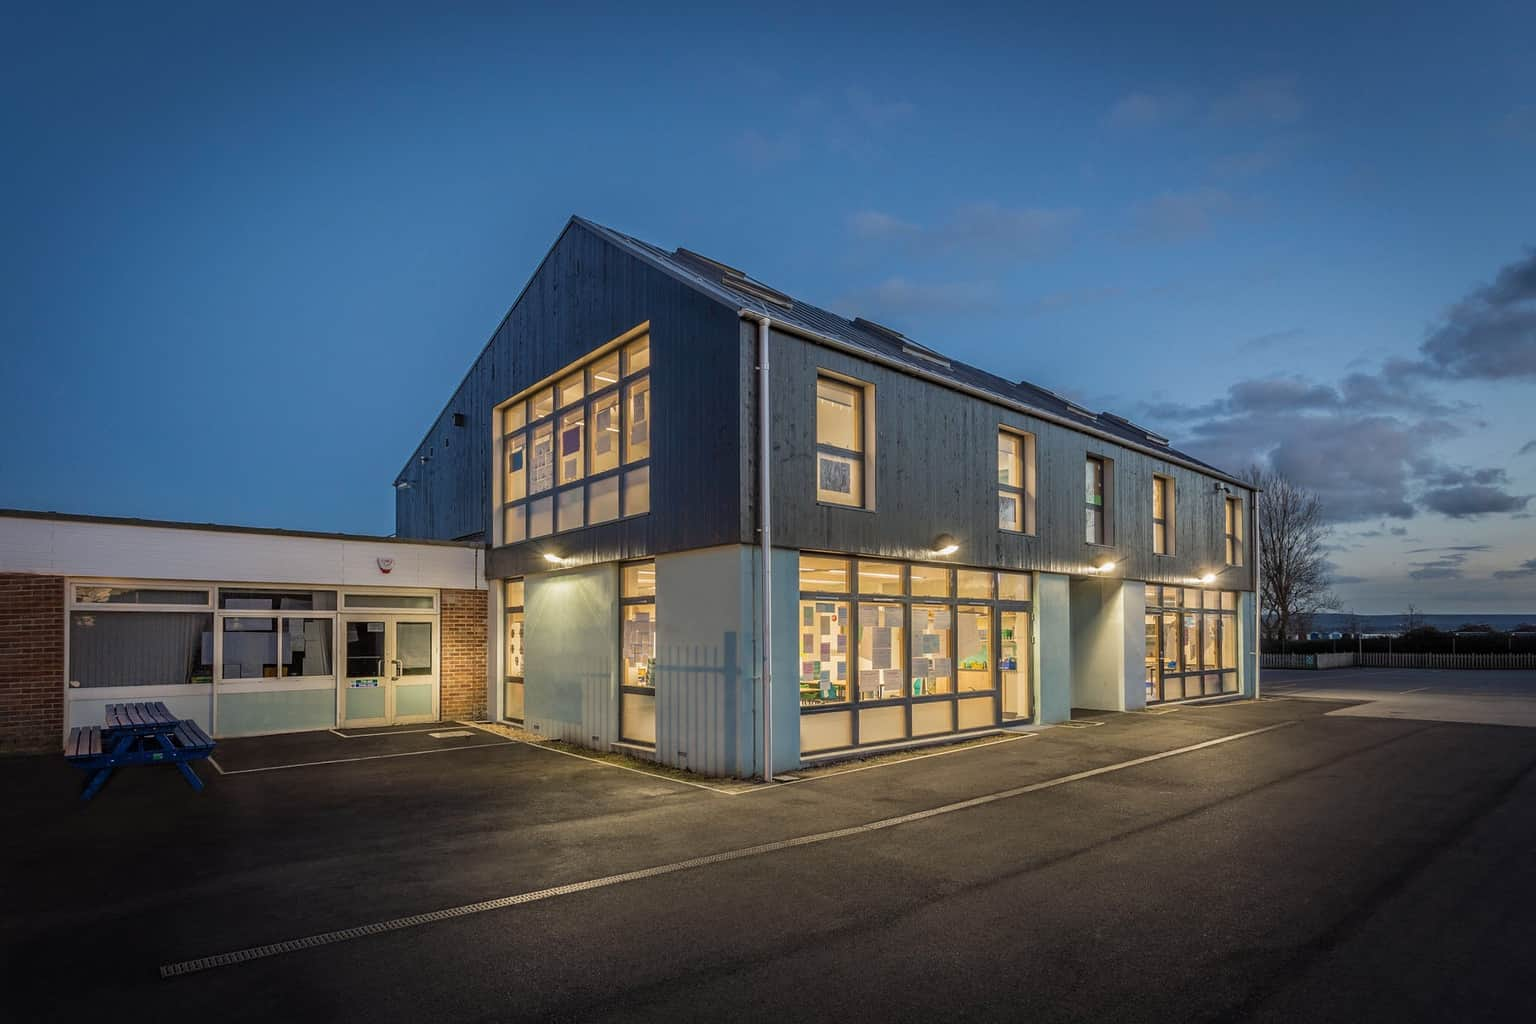 Picture of an extension to a school by architectural photographer Rick McEvoy